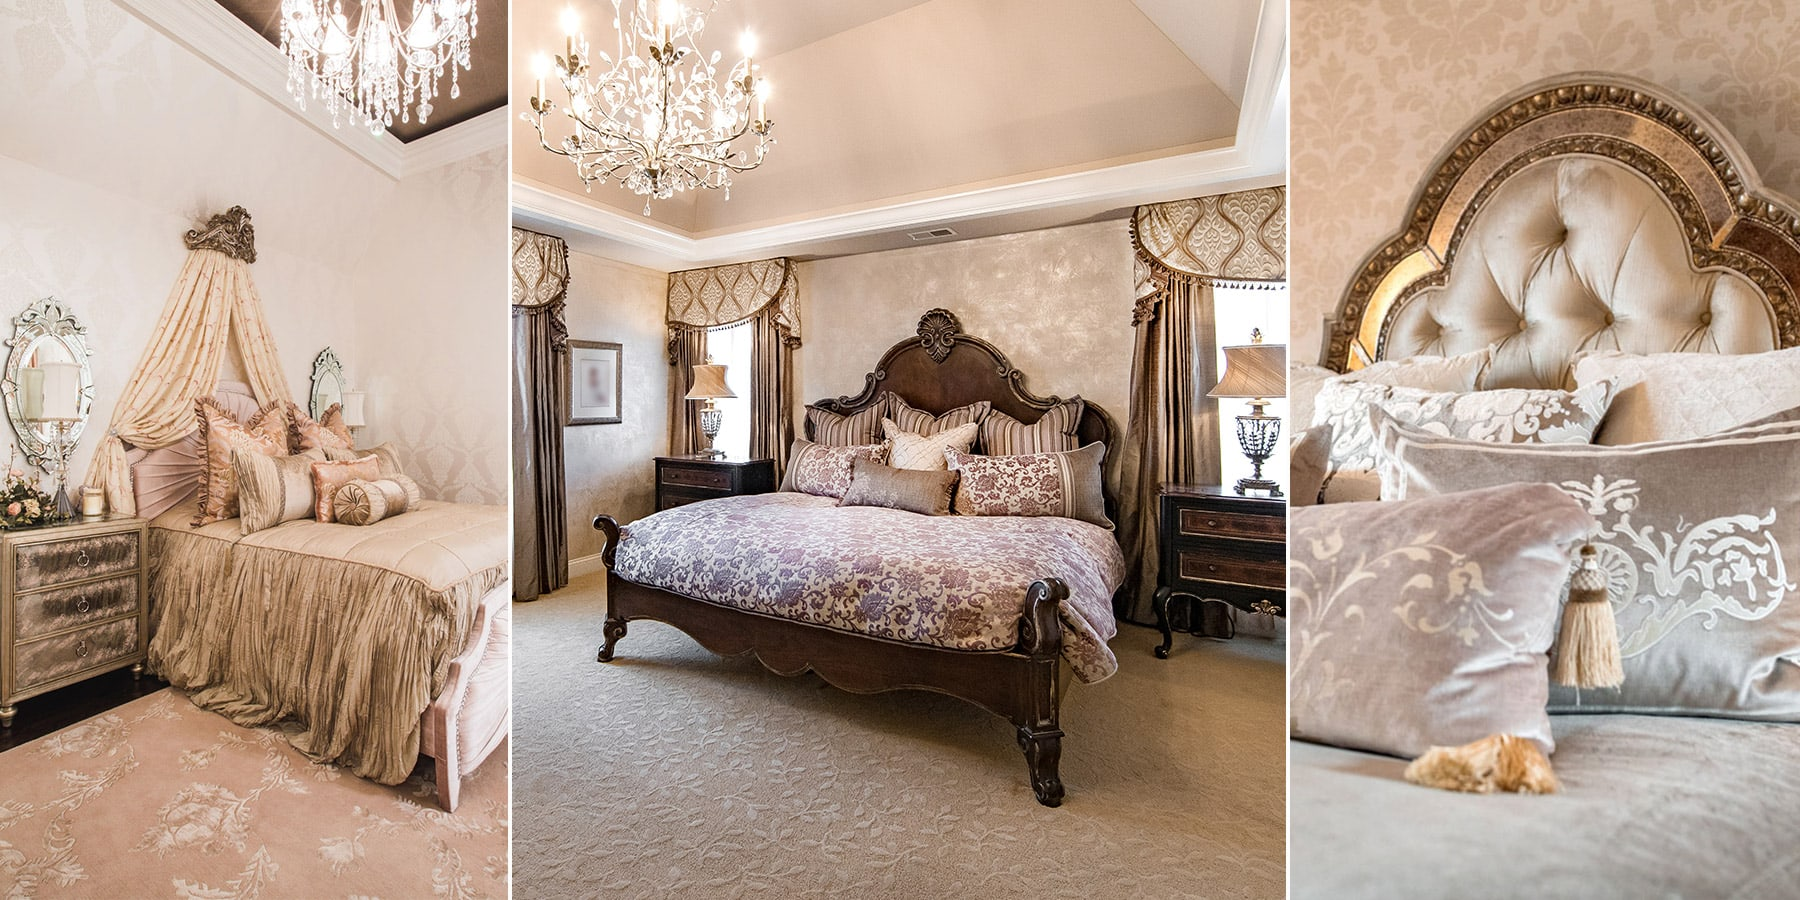 Luxury Bedroom Design Projects Linly Designs Chicago Interior Design